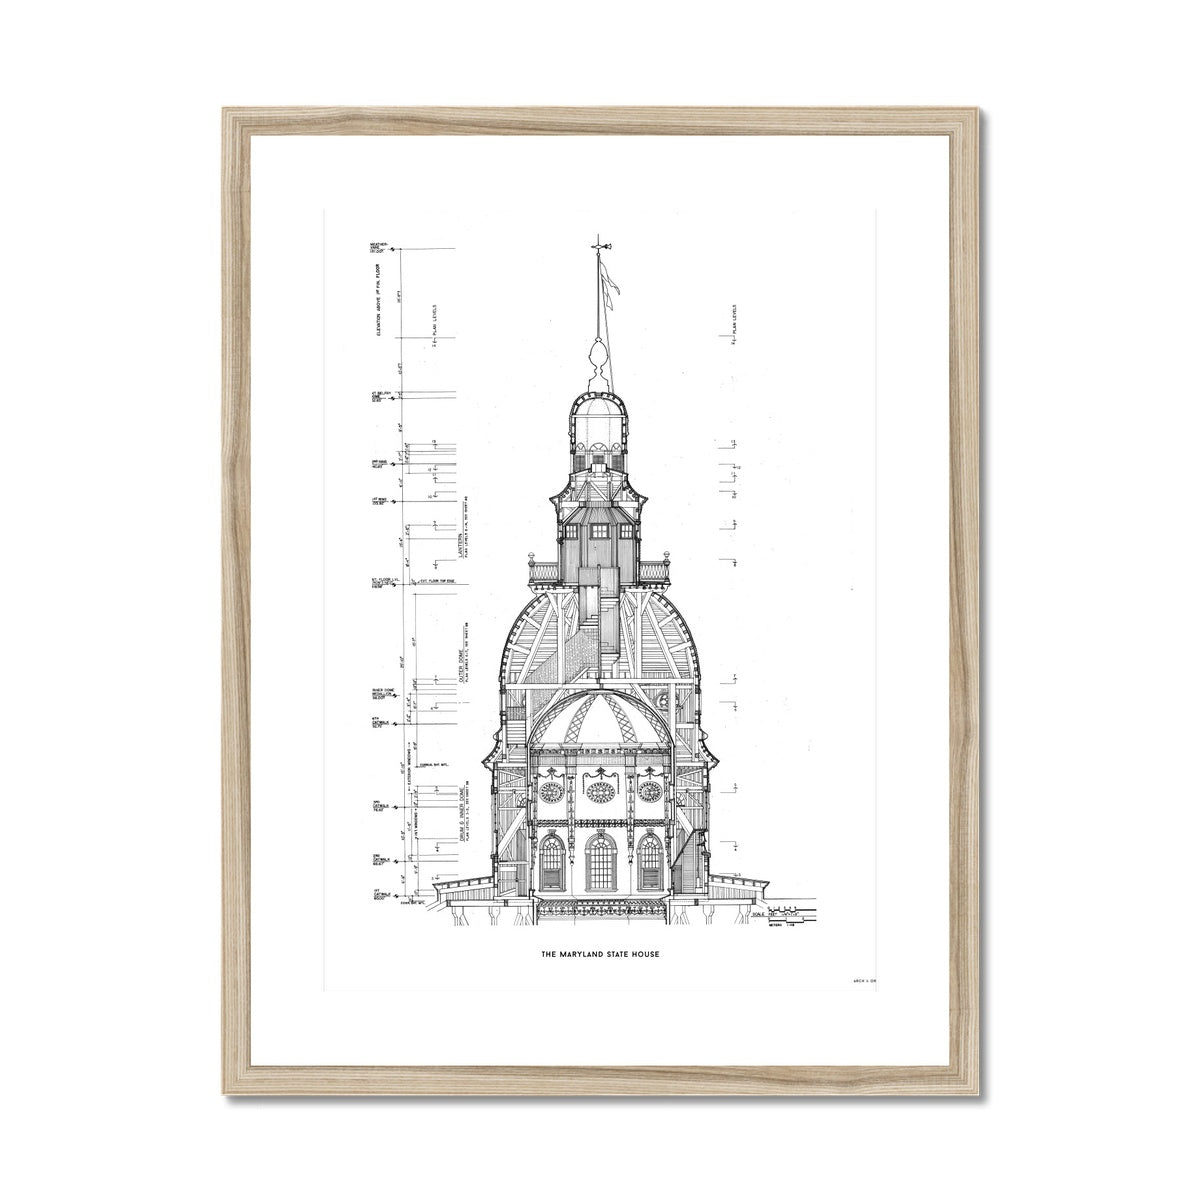 The Maryland State House - Dome West Elevation Cross Section - White -  Framed & Mounted Print